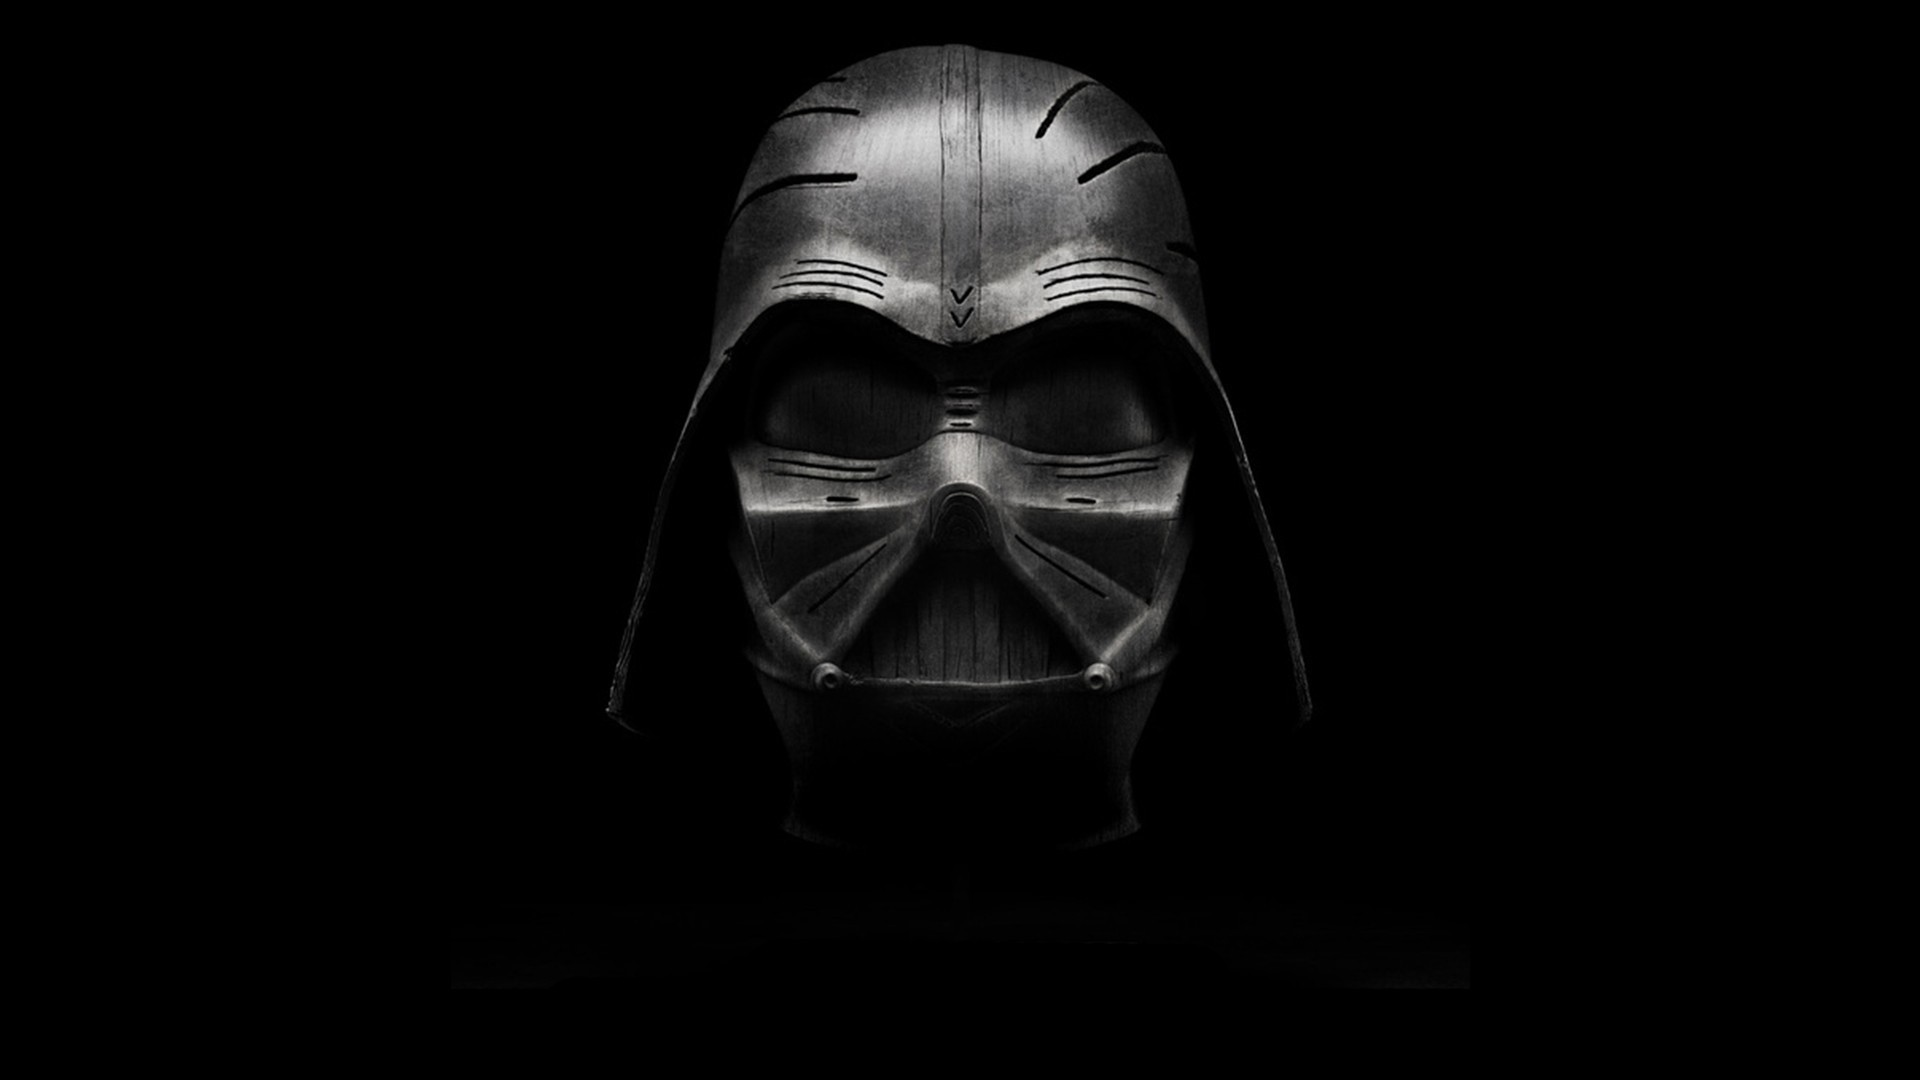 1920x1080 wallpaper Star Wars · movies · Darth Vader · Anakin Skywalker